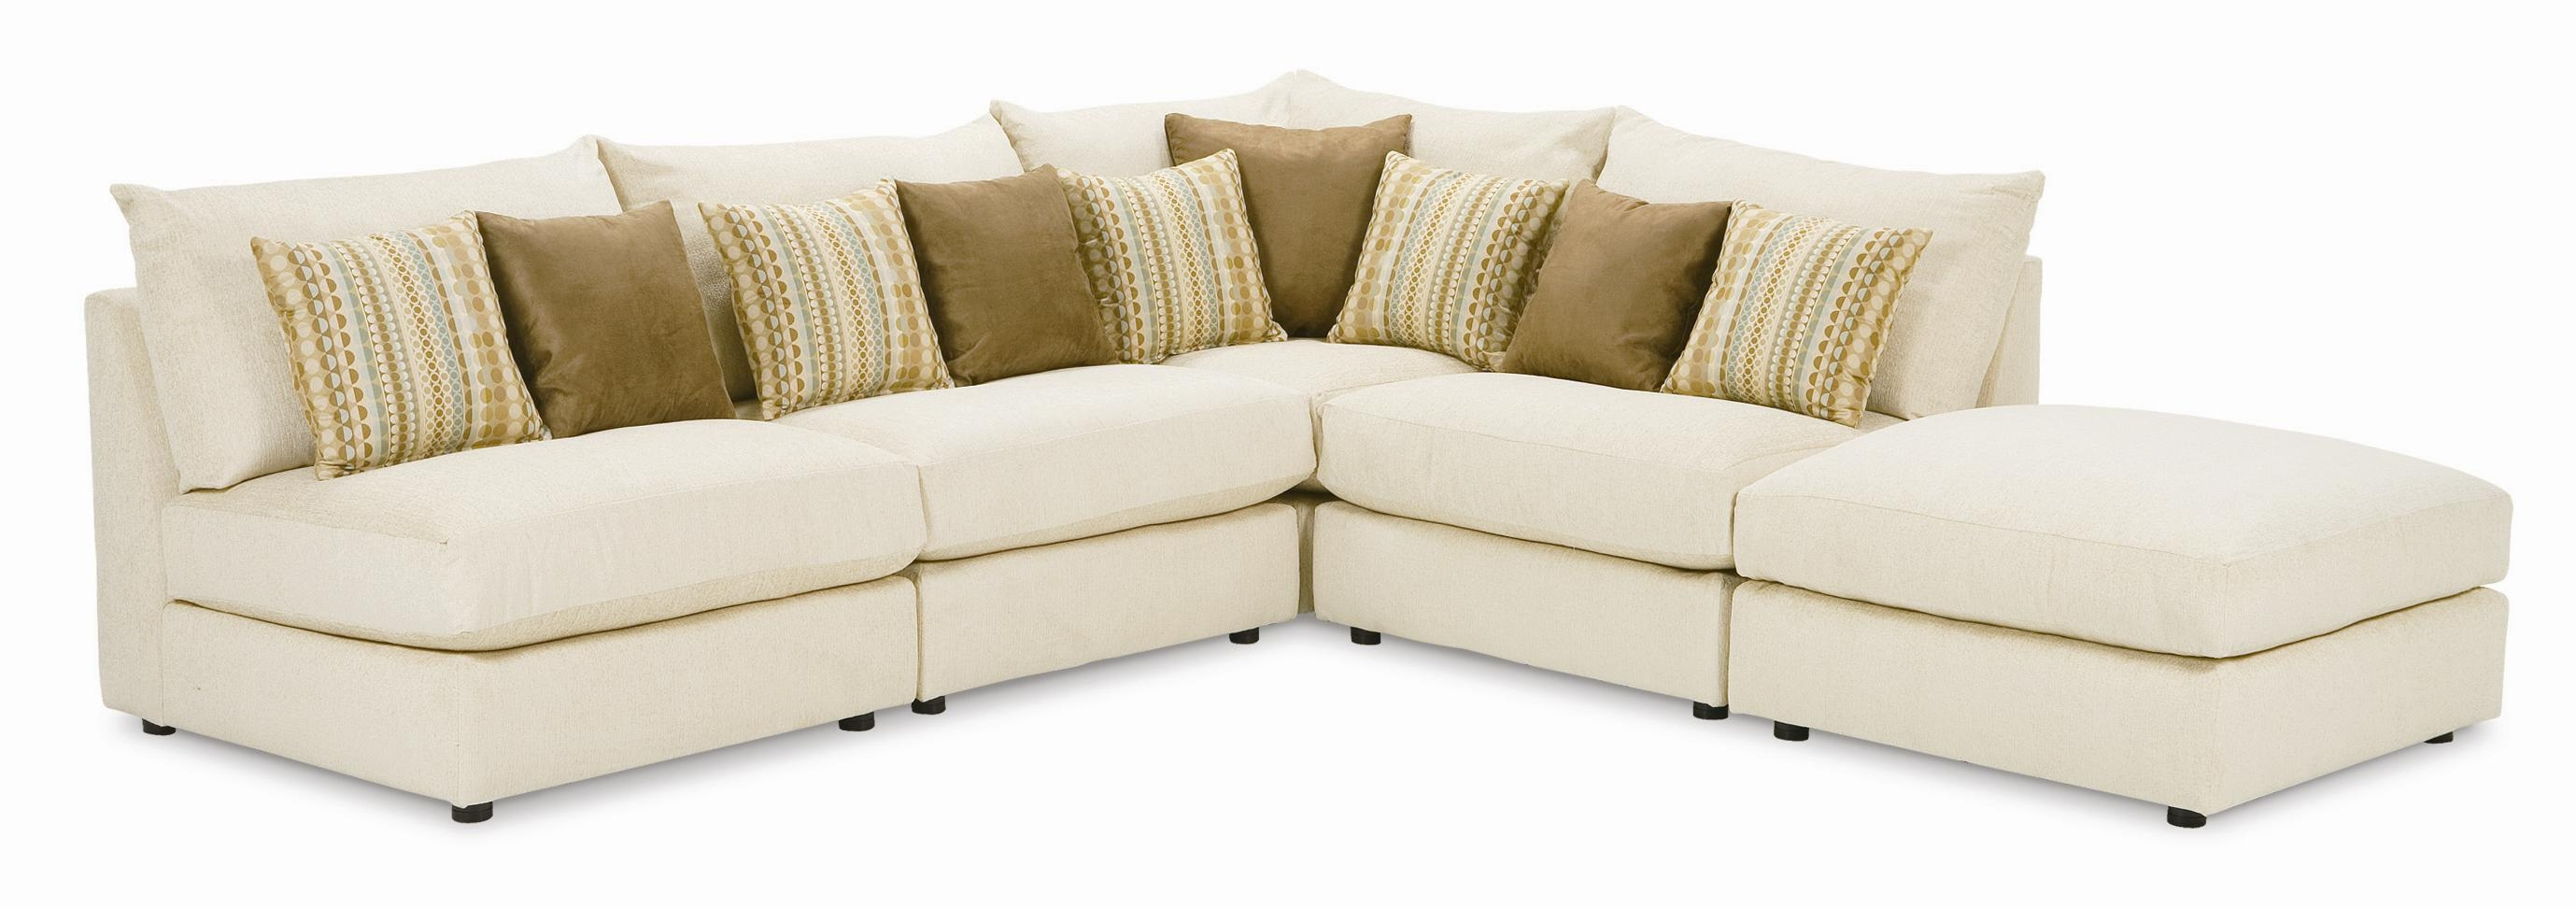 Popular Photo of Armless Sectional Sofas